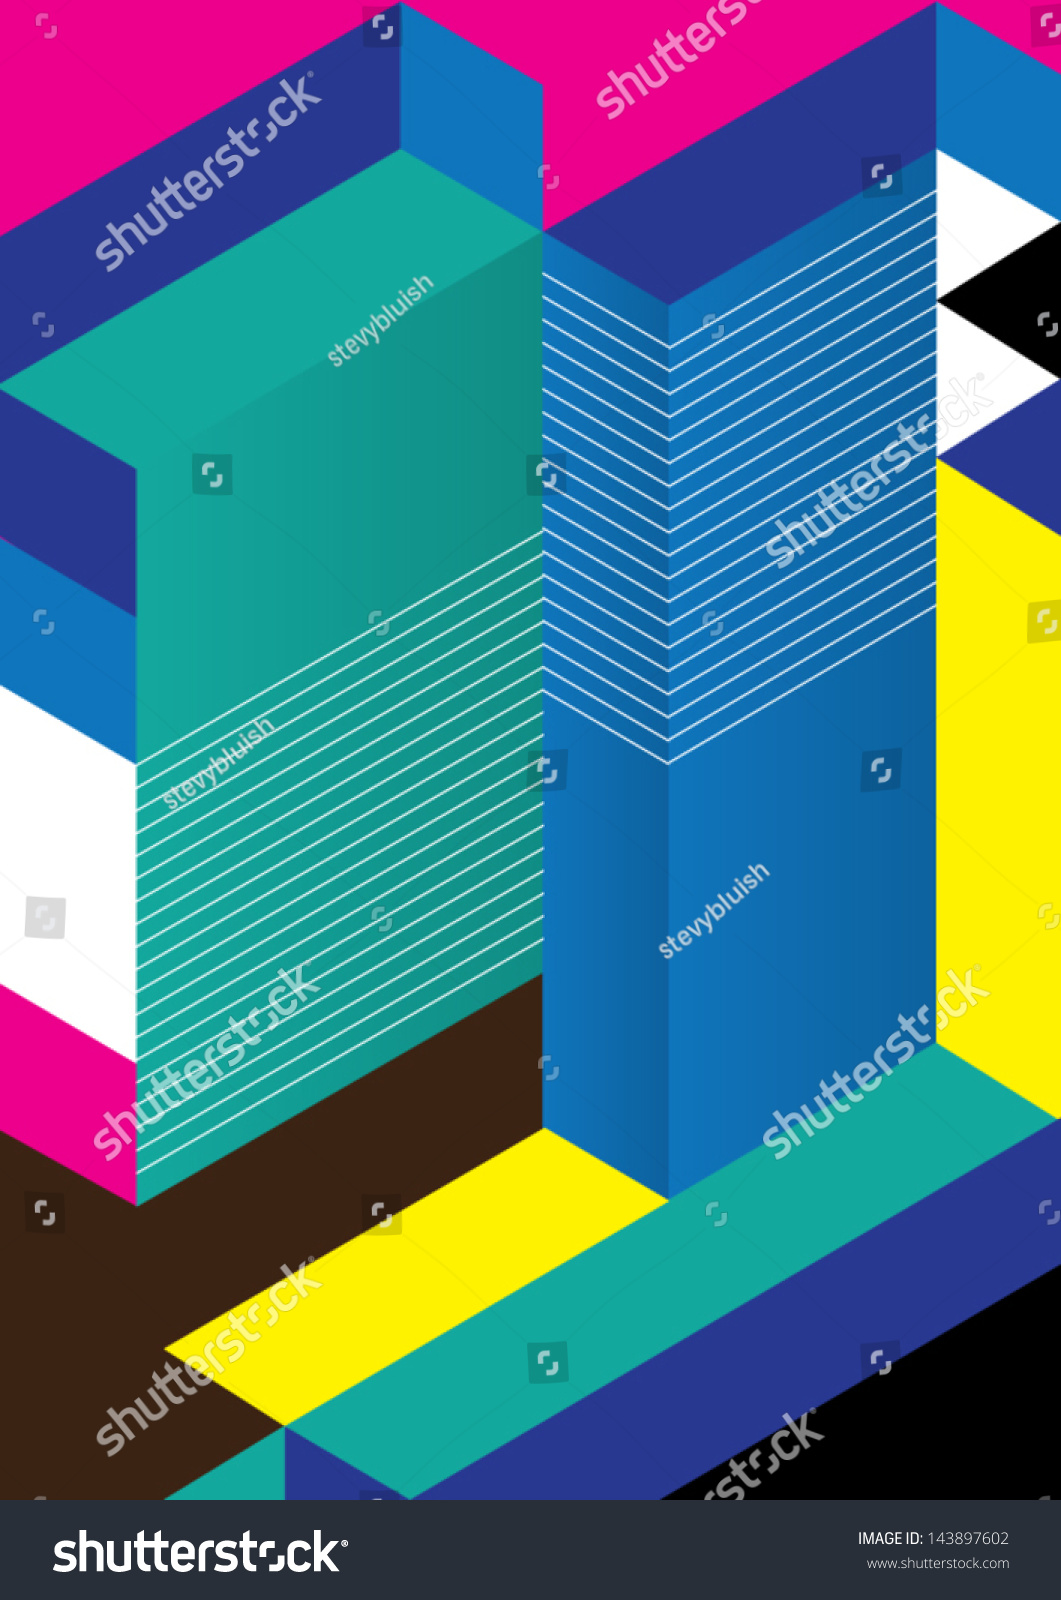 Vector Graphics Book Cover : Abstract geometric background vector illustration book